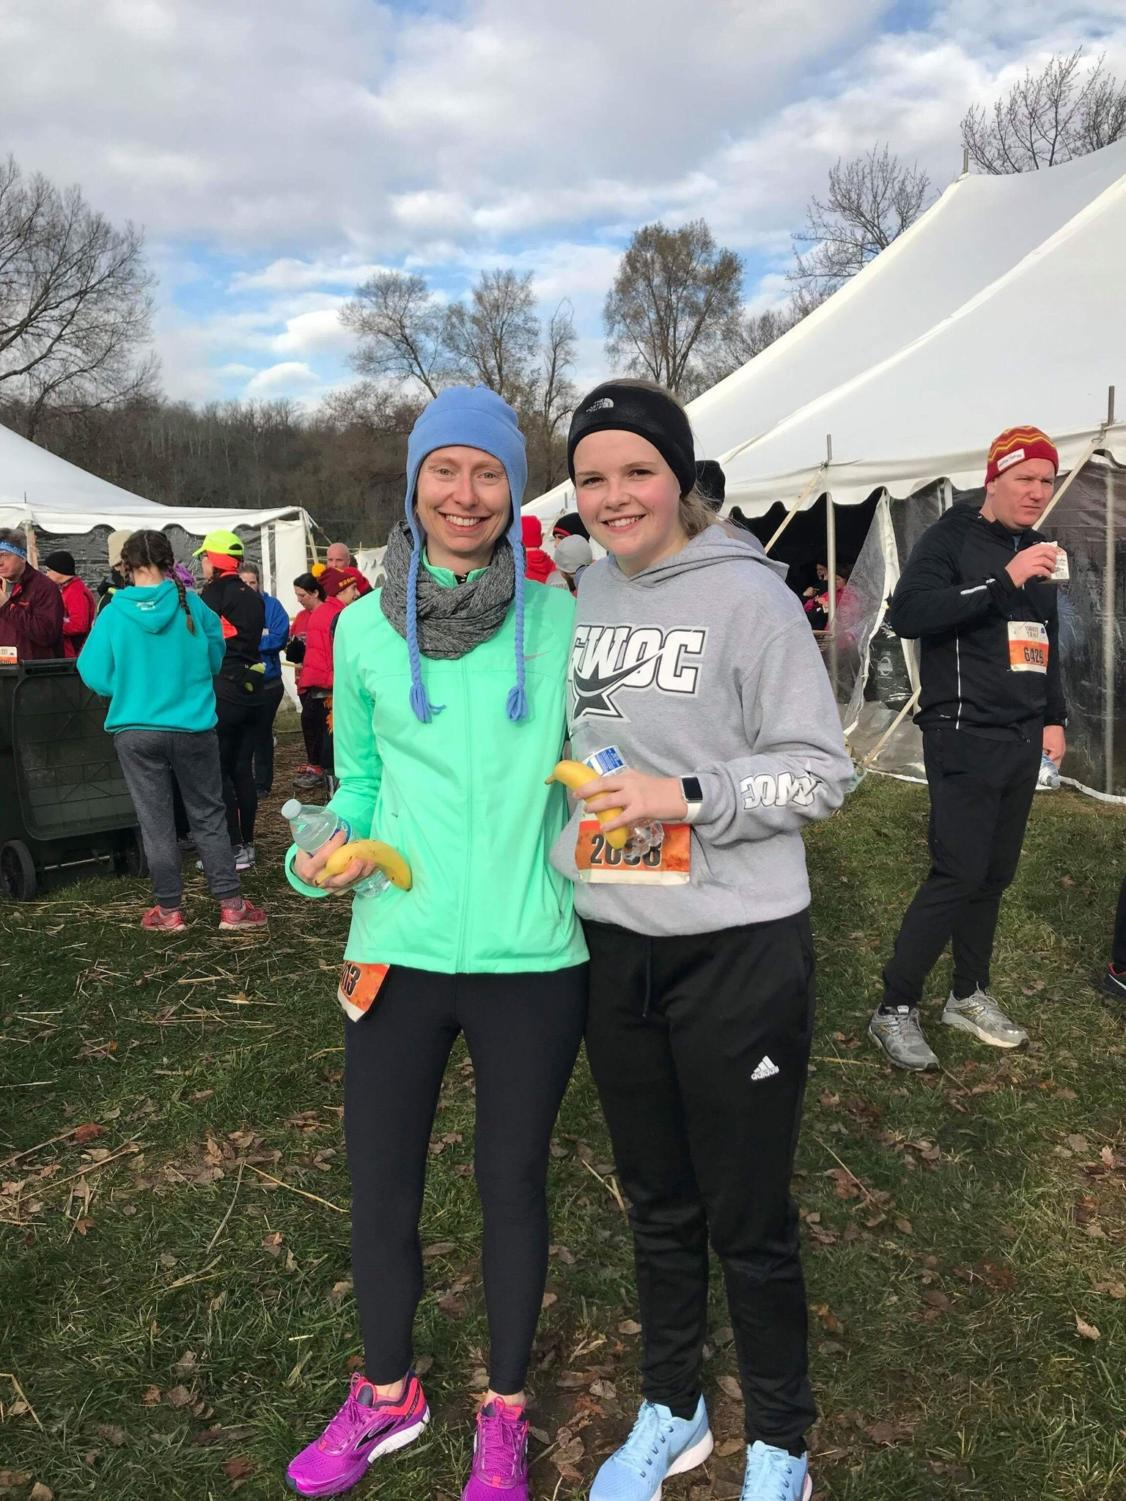 Ms. Parks and WCHS alumni, Gracie Johnson, at the Turkey Trot in Miamisburg.